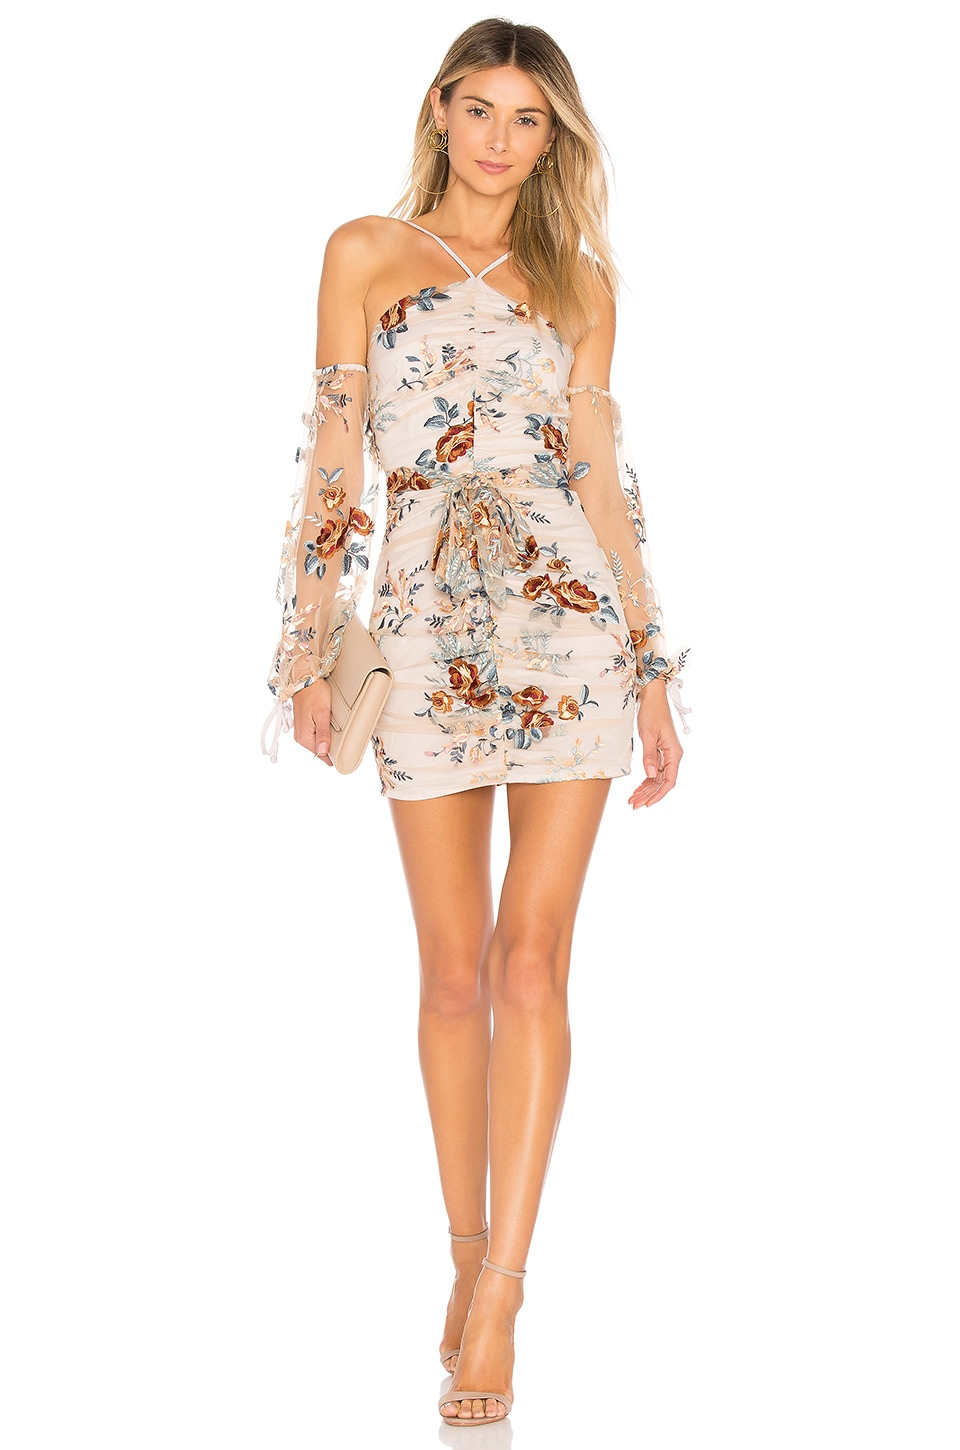 Tularosa Cali Dress in Teacup Floral